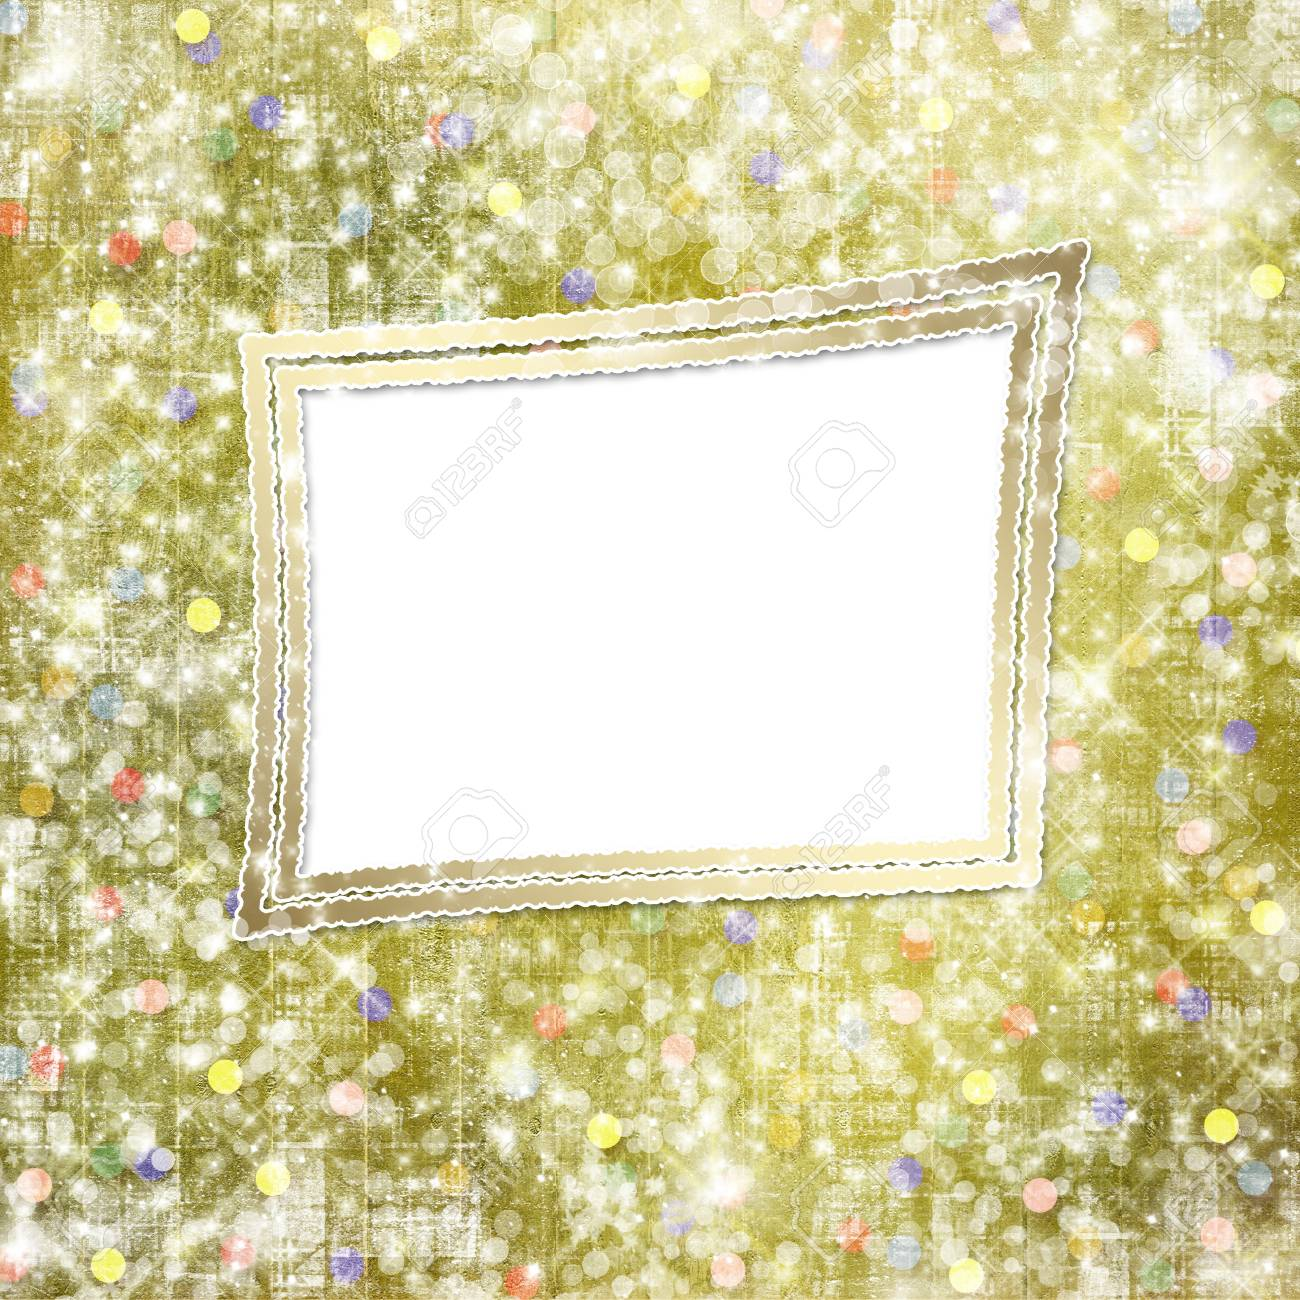 Abstract snowy background with snowflakes, stars and fun confetti Stock Photo - 16584077